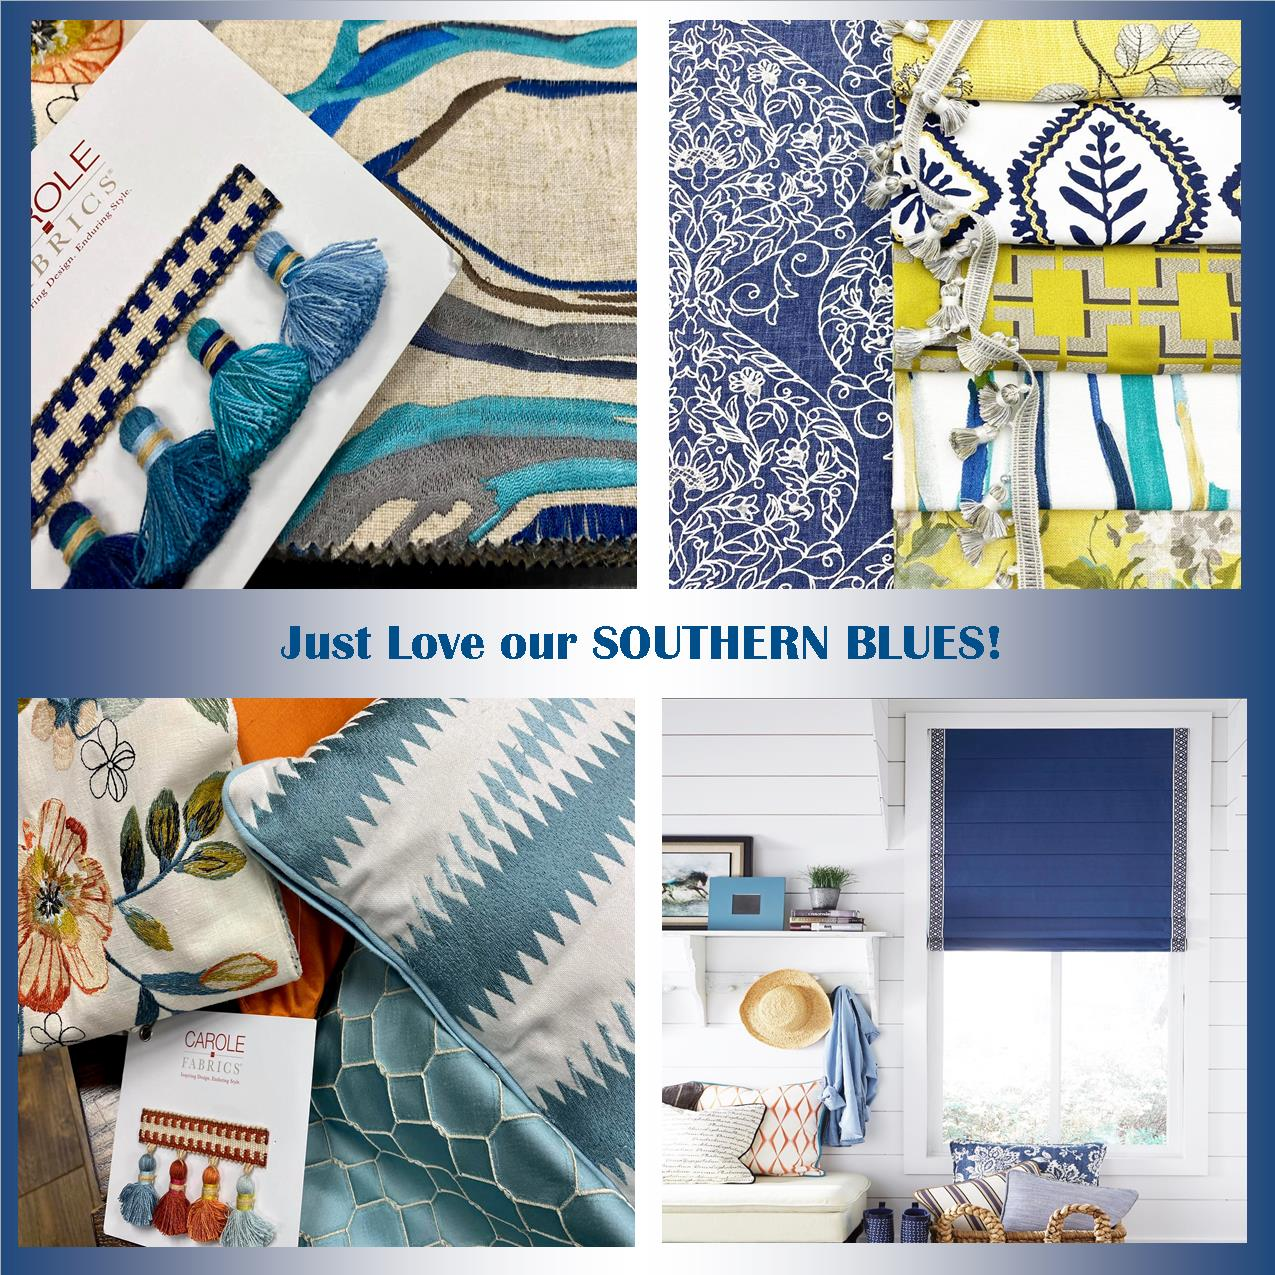 Southern blues | Inspiration Board